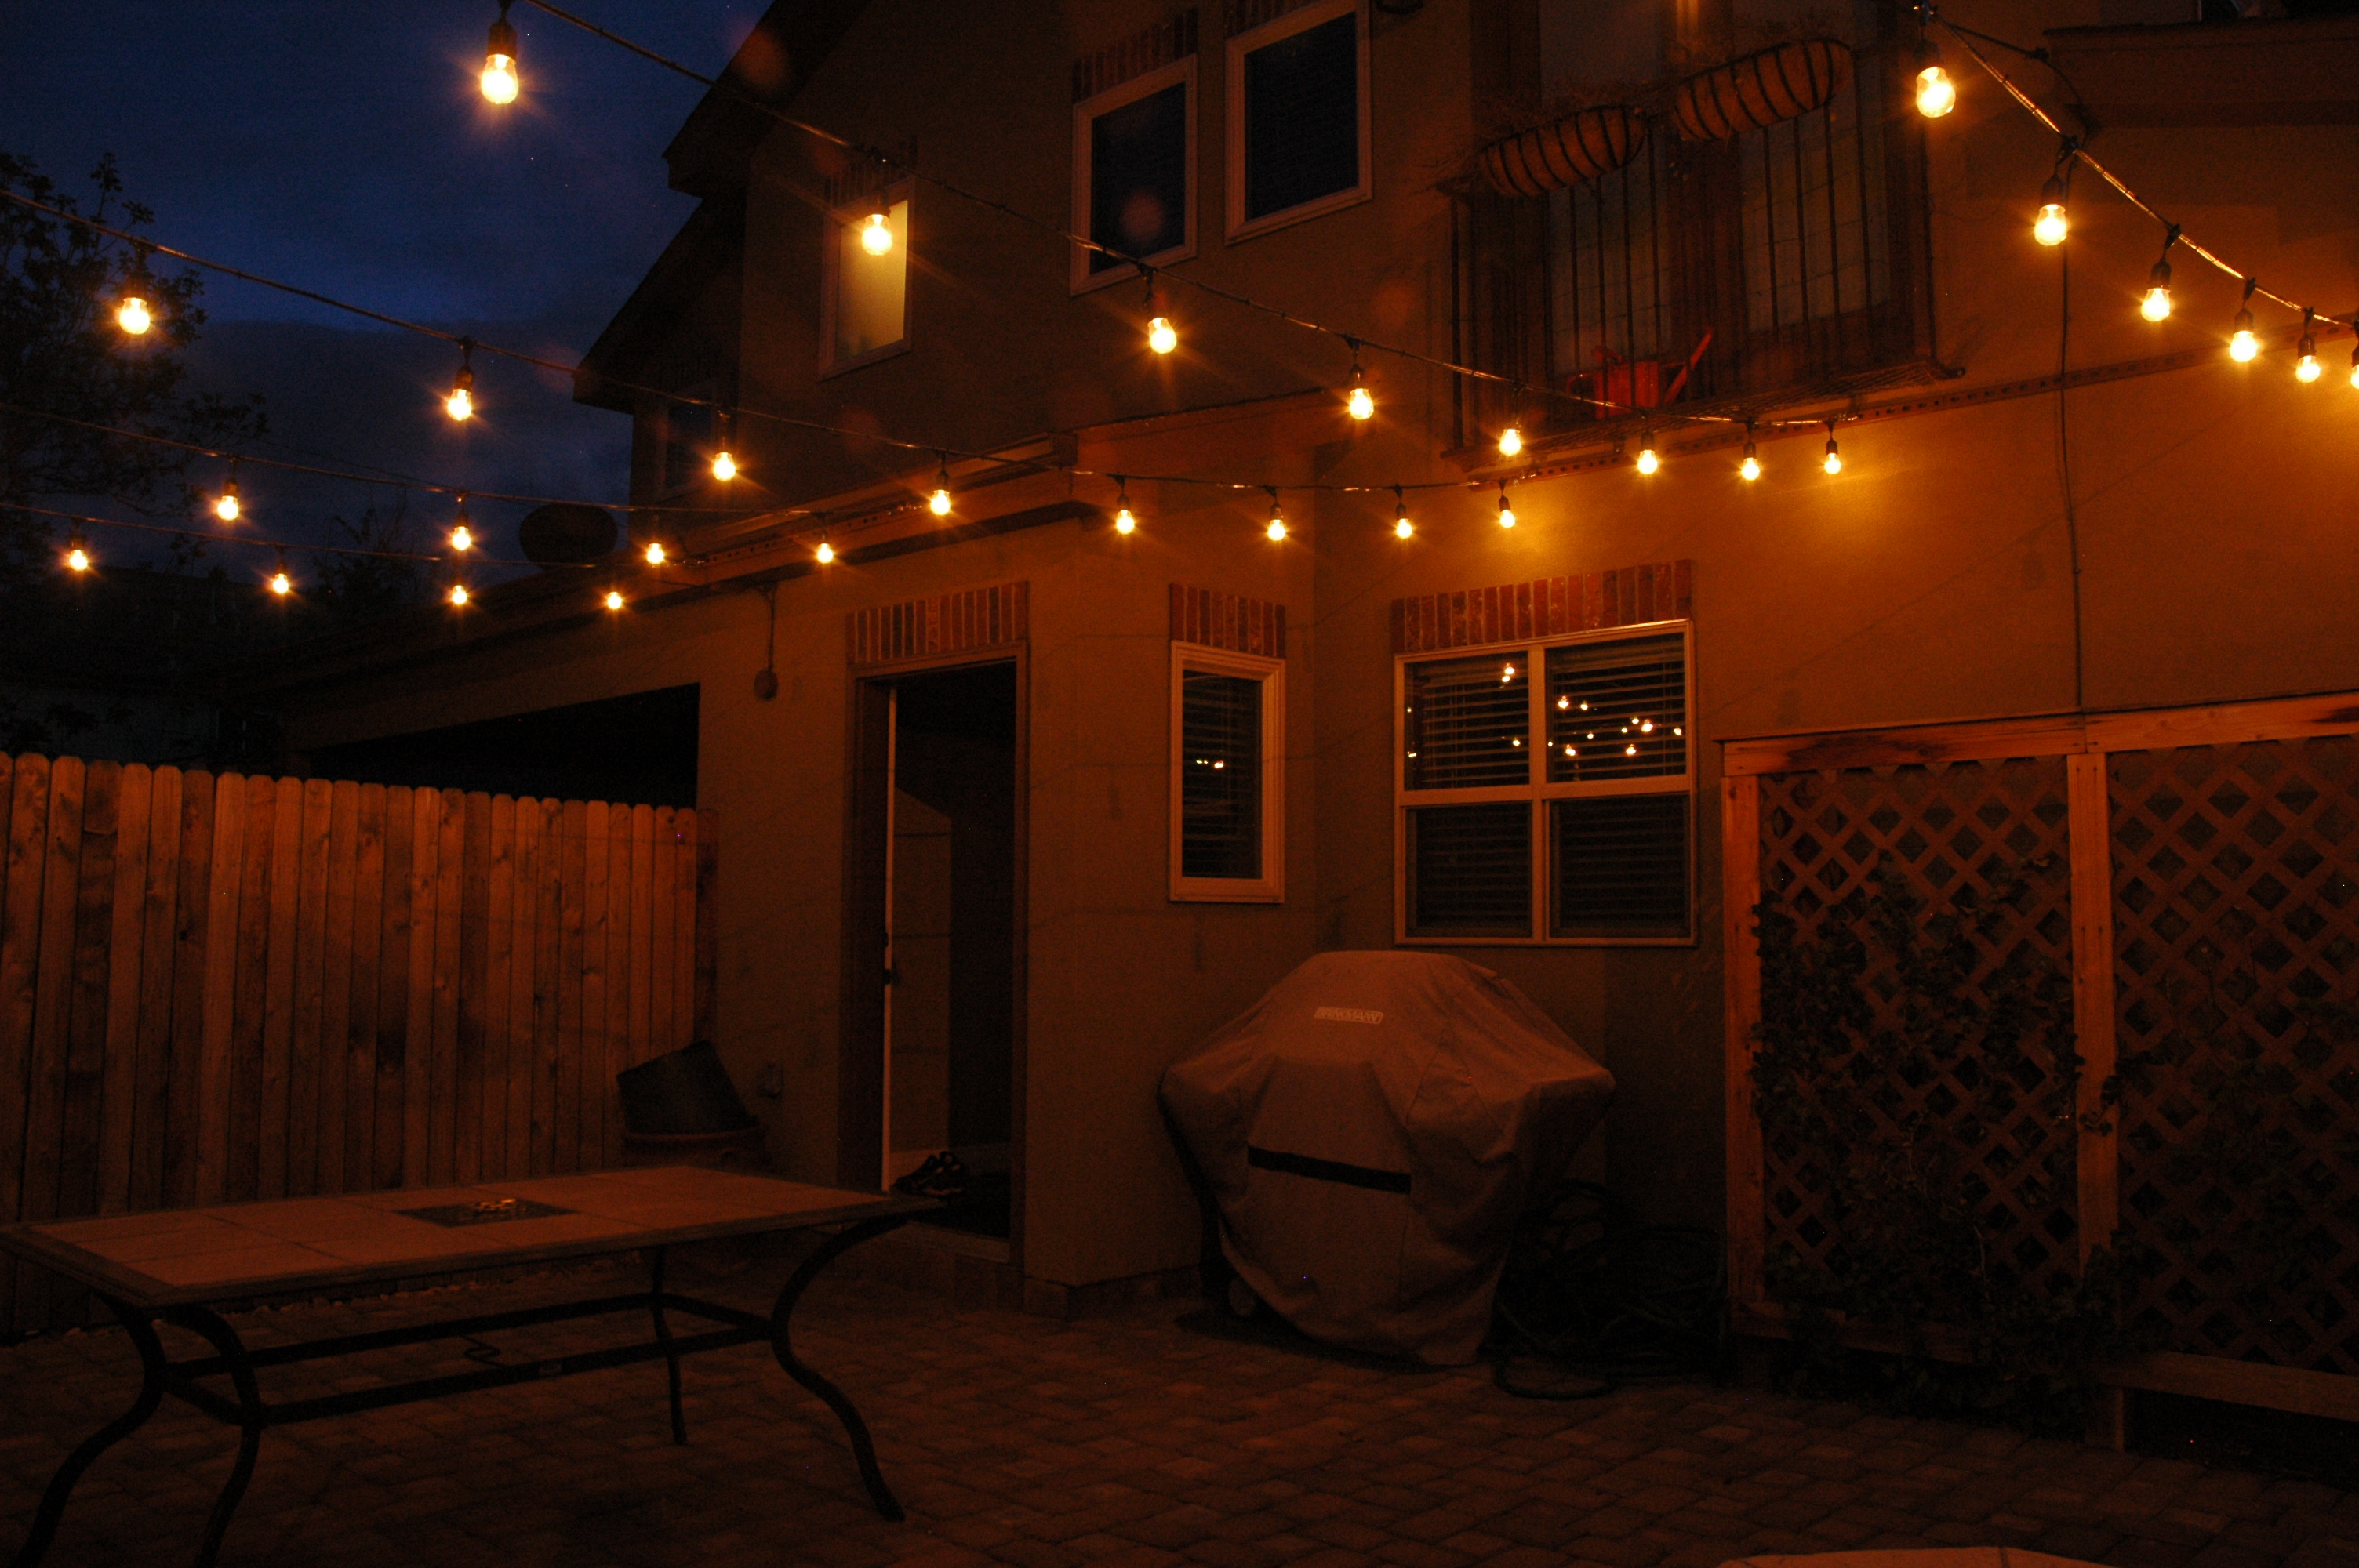 Permanent festival lighting for outdoor areas